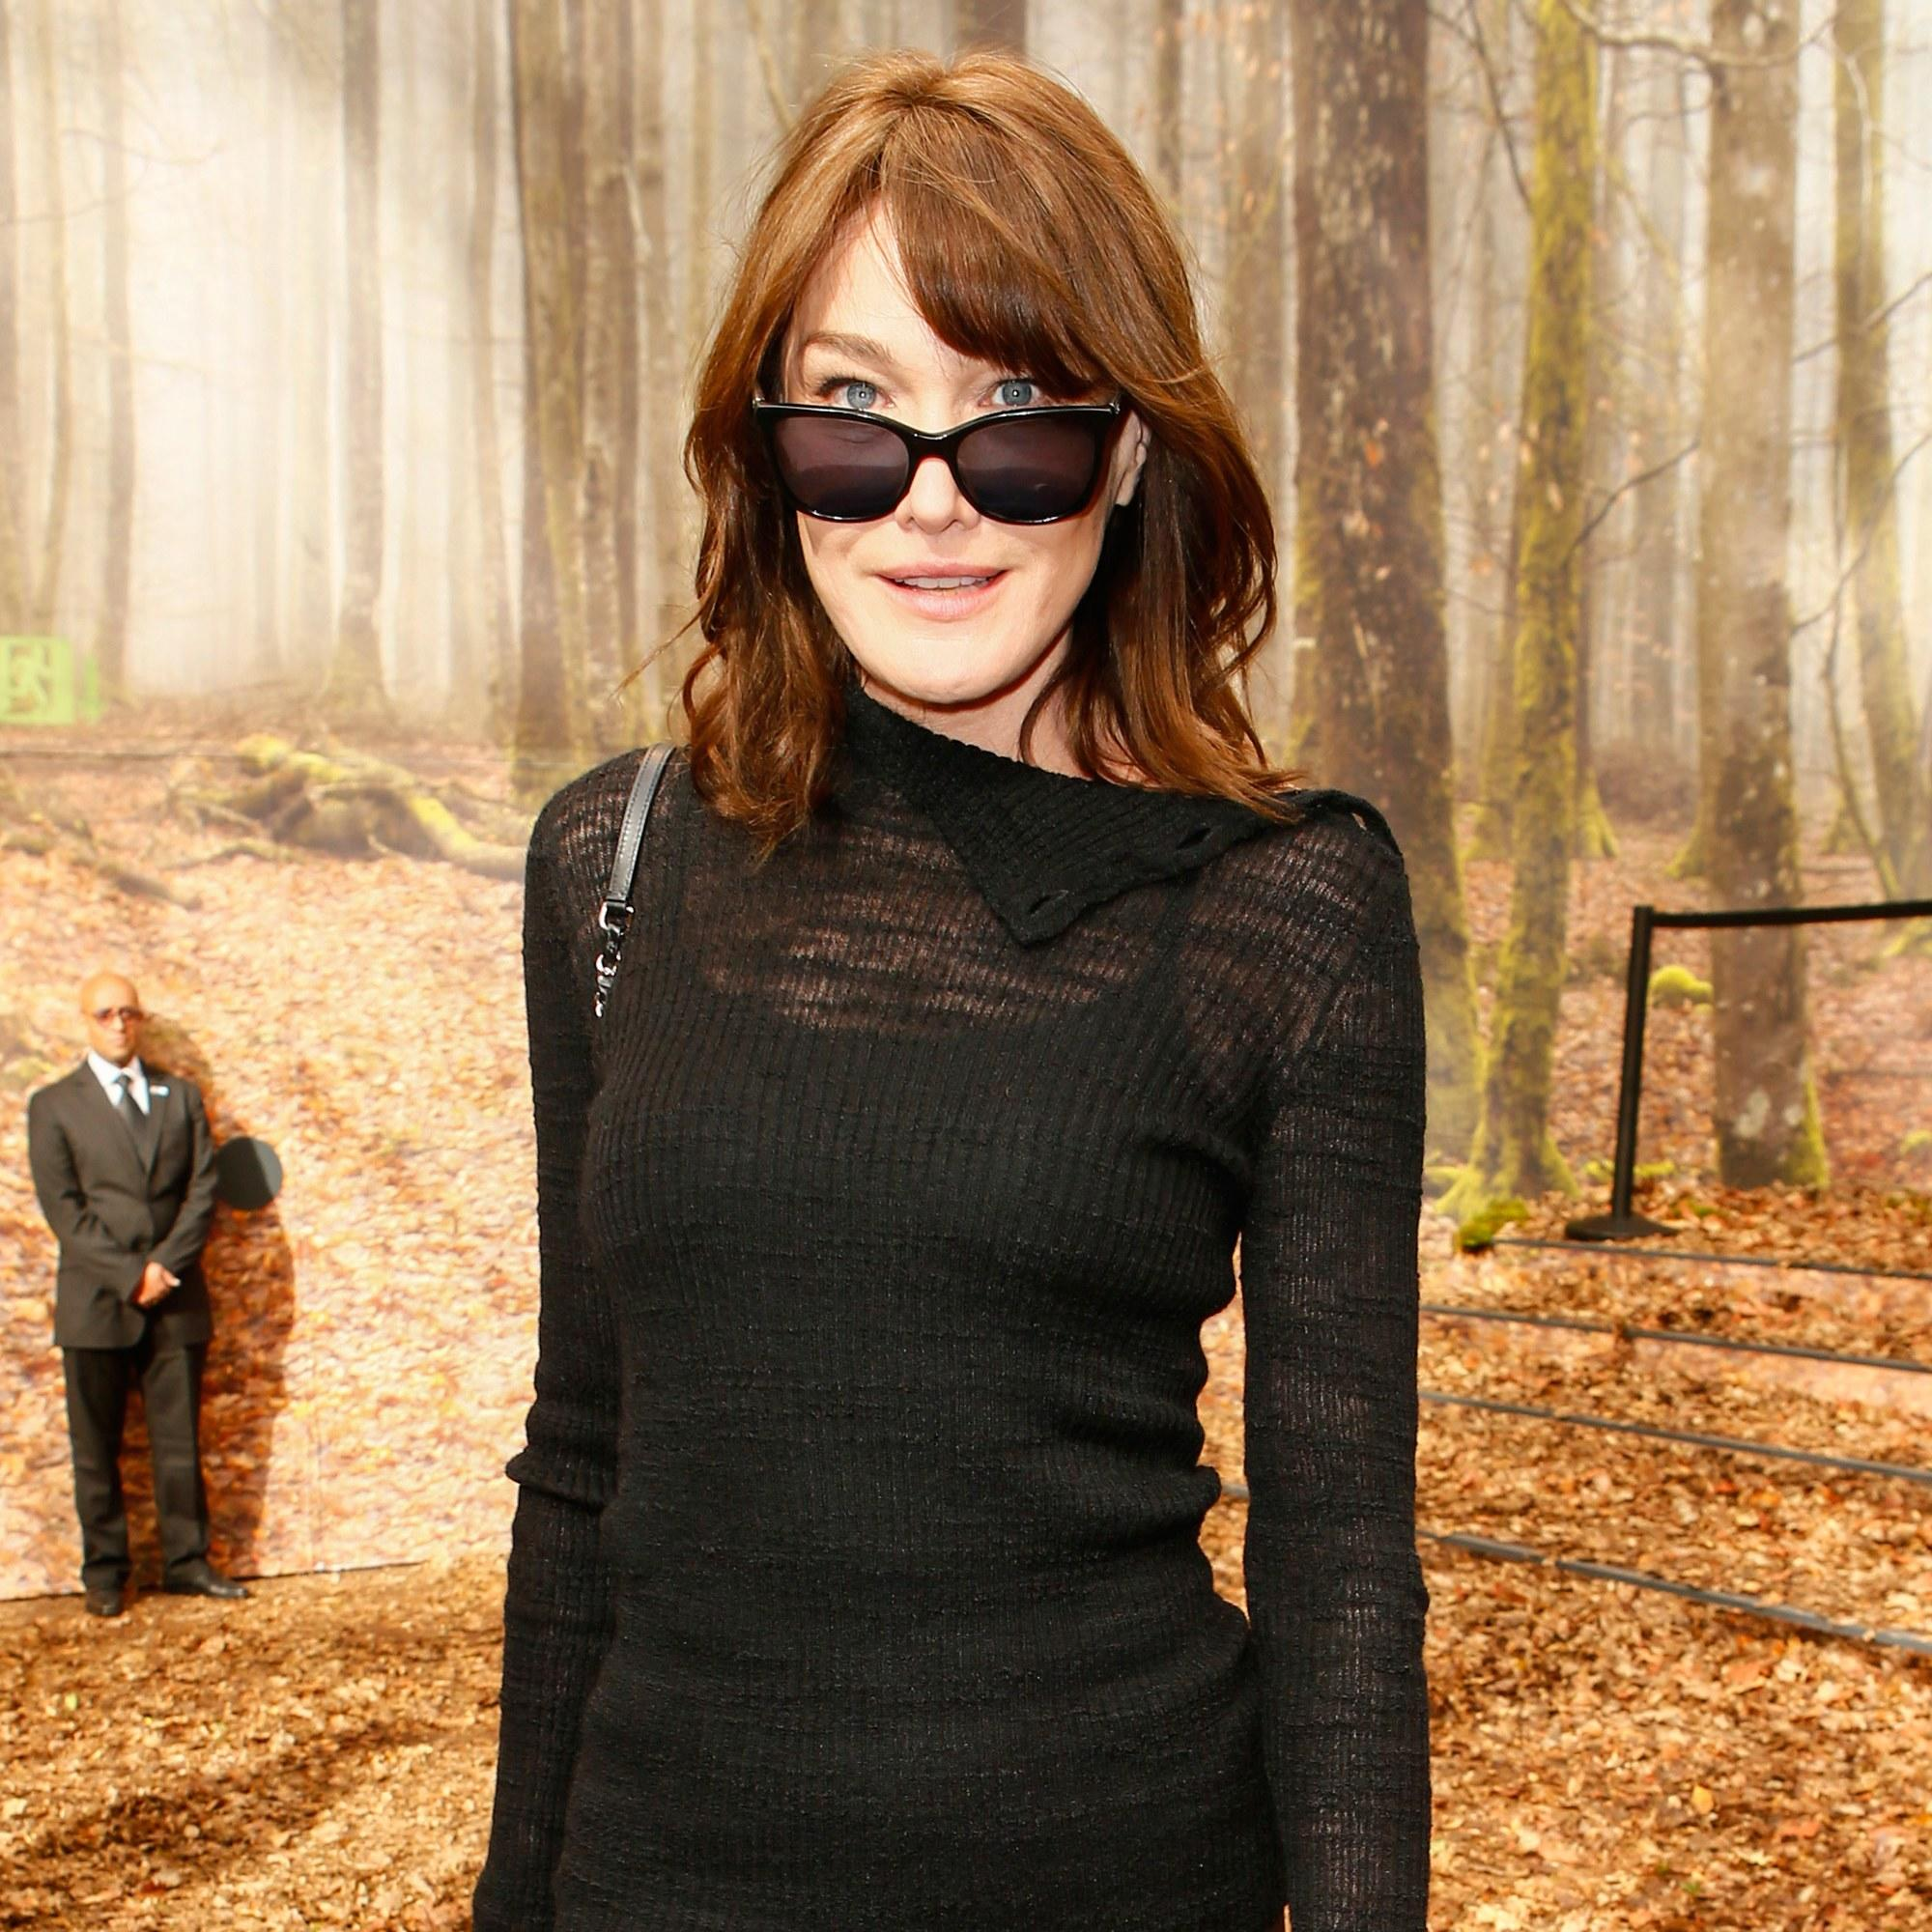 Carla Bruni Sarkozy Masters The French Bob And Dark Sunglasses For Day At Chanel